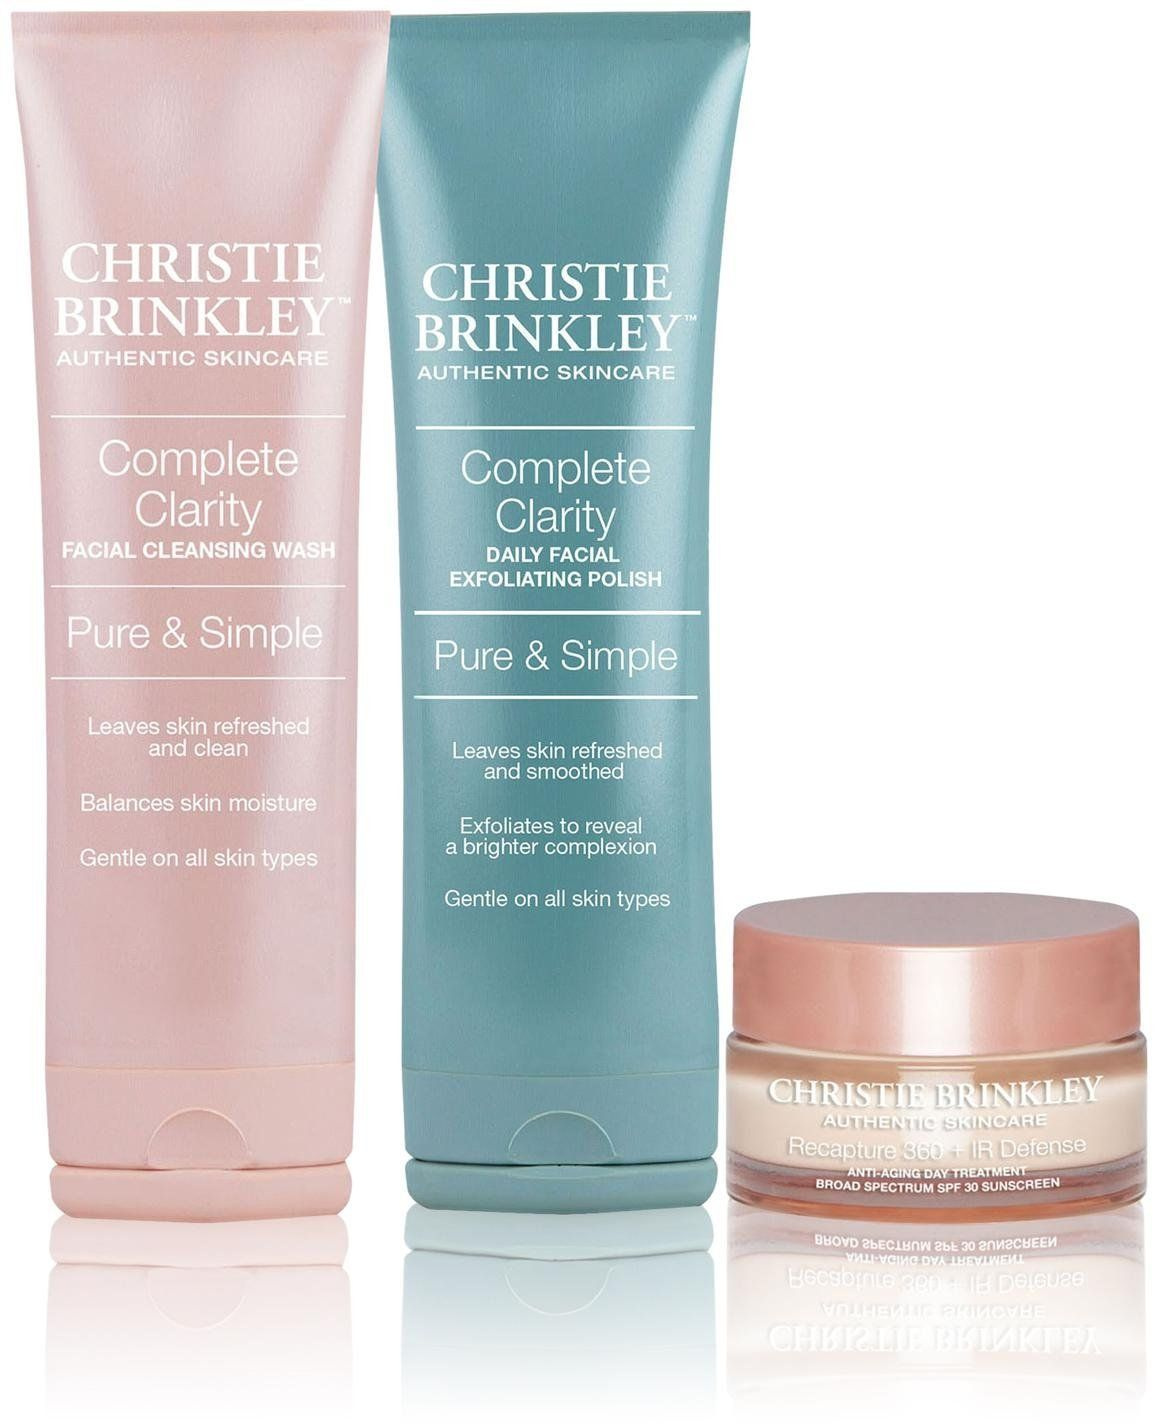 Christie Brinkley Authentic Skin Care 3piece Kit 12 67 Ounce Click Image To Review More D Christie Brinkley Skin Care Best Foundation Makeup Facial Cleansing